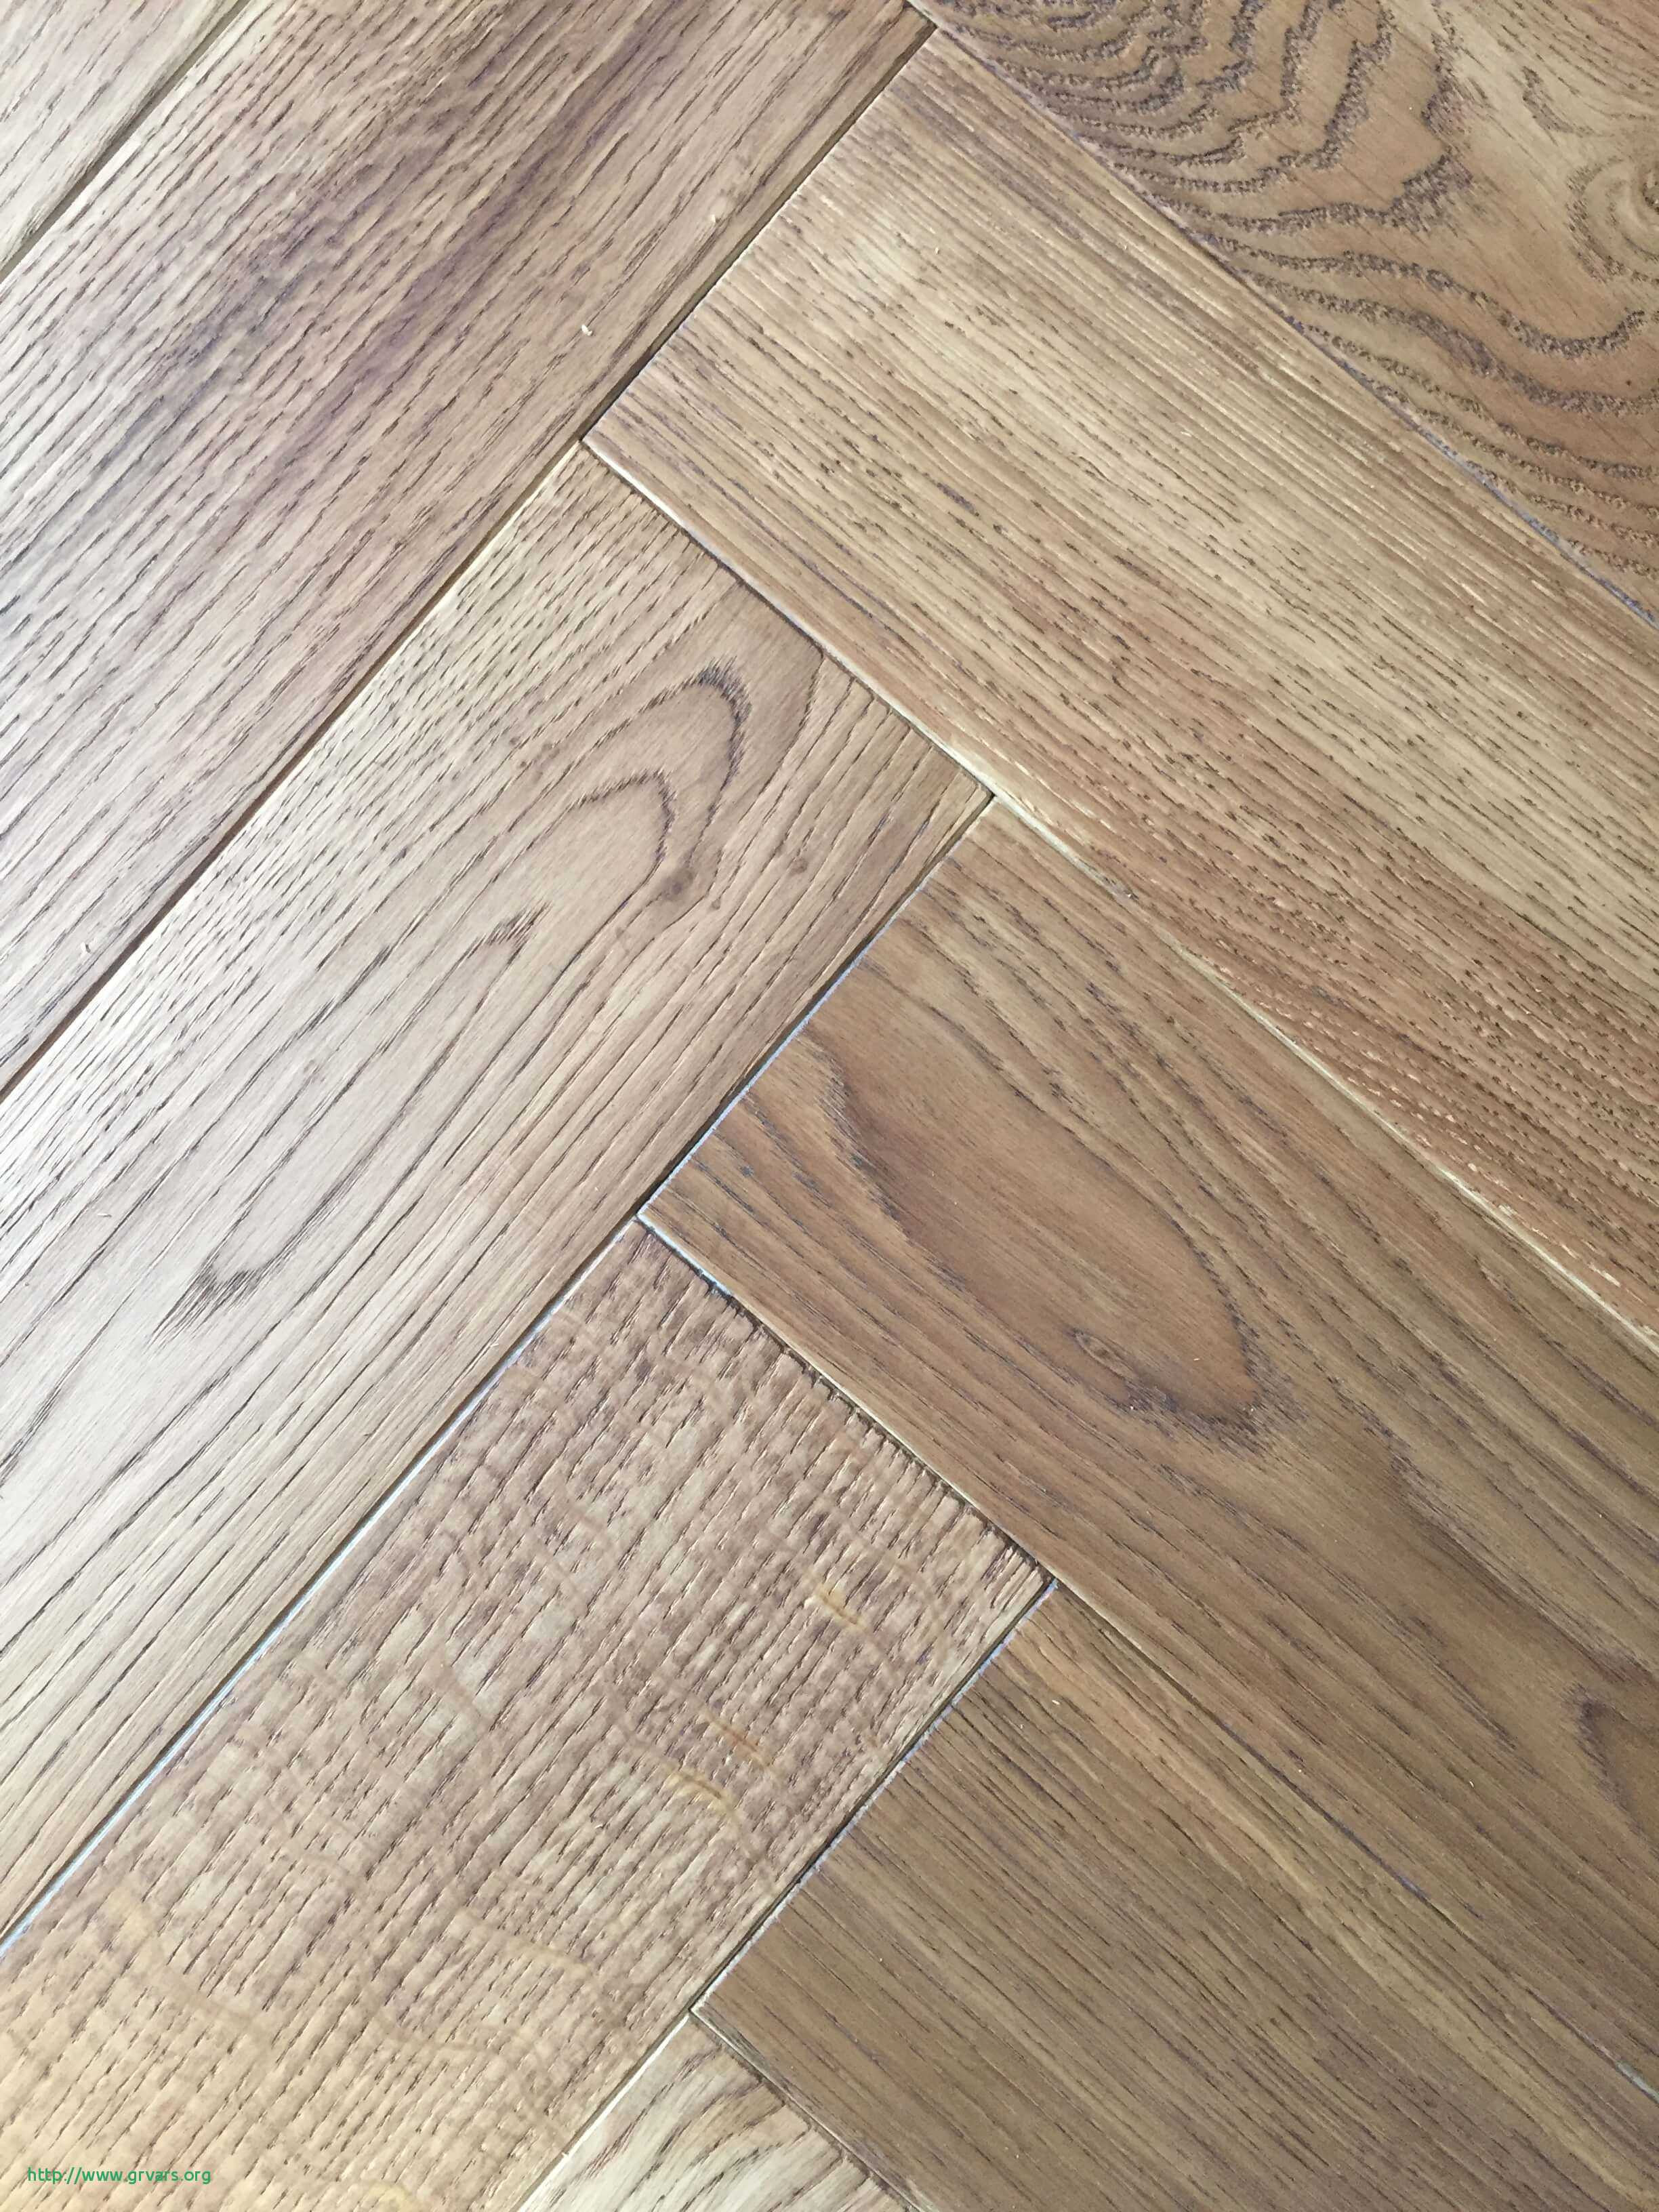 How to Install Engineered Hardwood Floors On Concrete Of Best Way to Install Engineered Wood Flooring Unique Light Smoke Oak Throughout Best Way to Install Engineered Wood Flooring Unique Light Smoke Oak Smoked and Wire Brushed Engineered Wood Herringbone